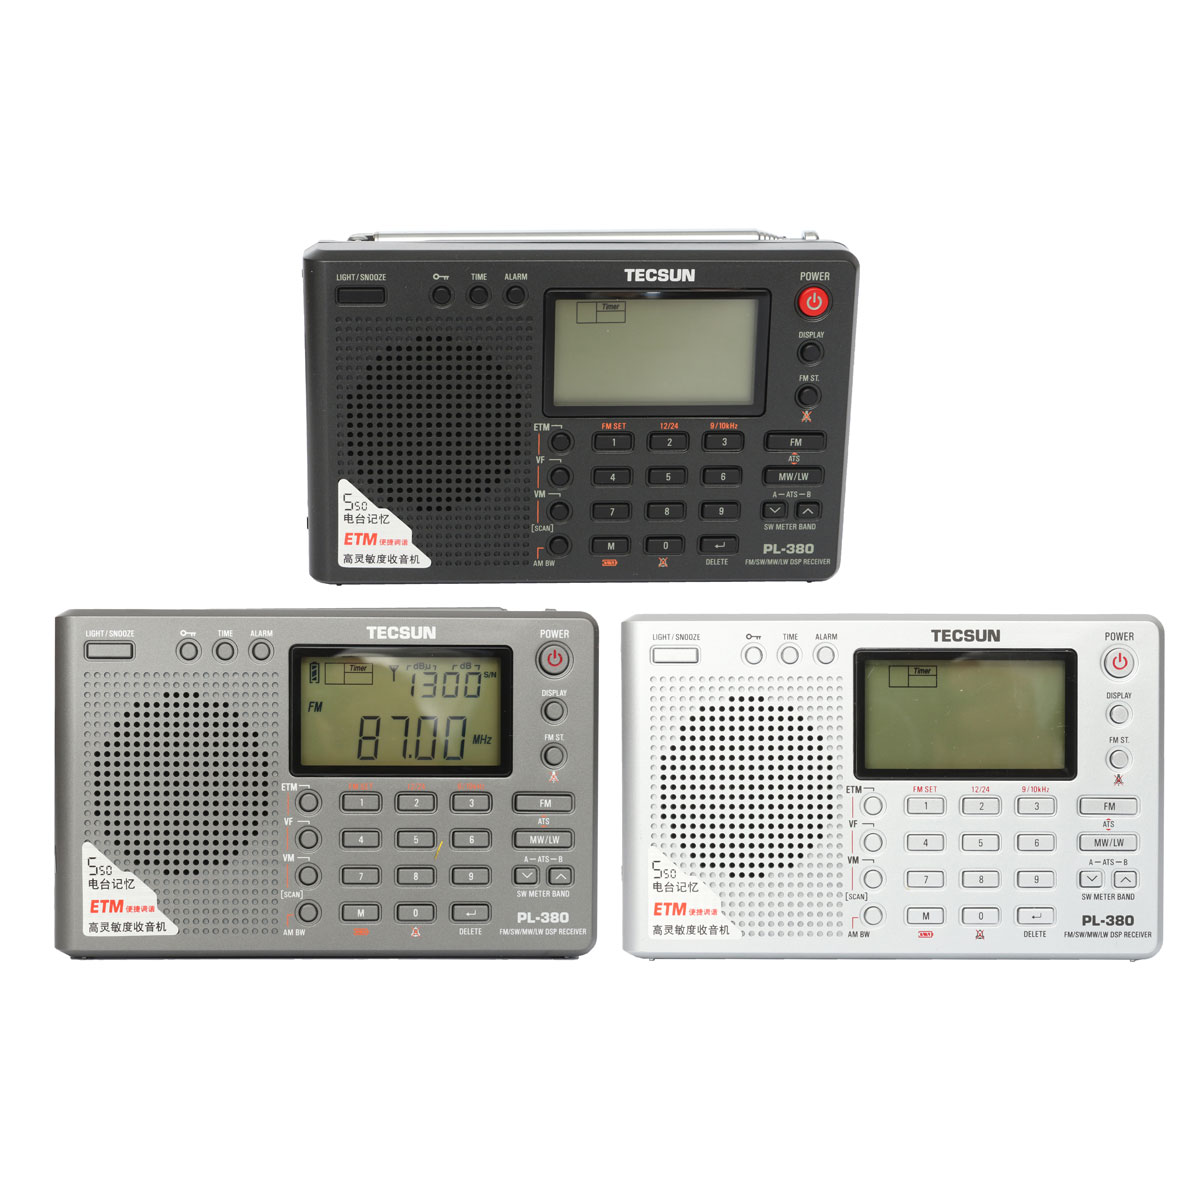 TECSUN PL-380 DSP PLL FM MW SW LW Digital Stereo Radio World-Band Receiver New 135x86x29mm 3 Colors 7 Tuning Mode Selectable hot sale tecsun pl 600 pl600 portable fm radio fm stereo am fm sw mw pll all band receiver digital radio tecsun free shipping